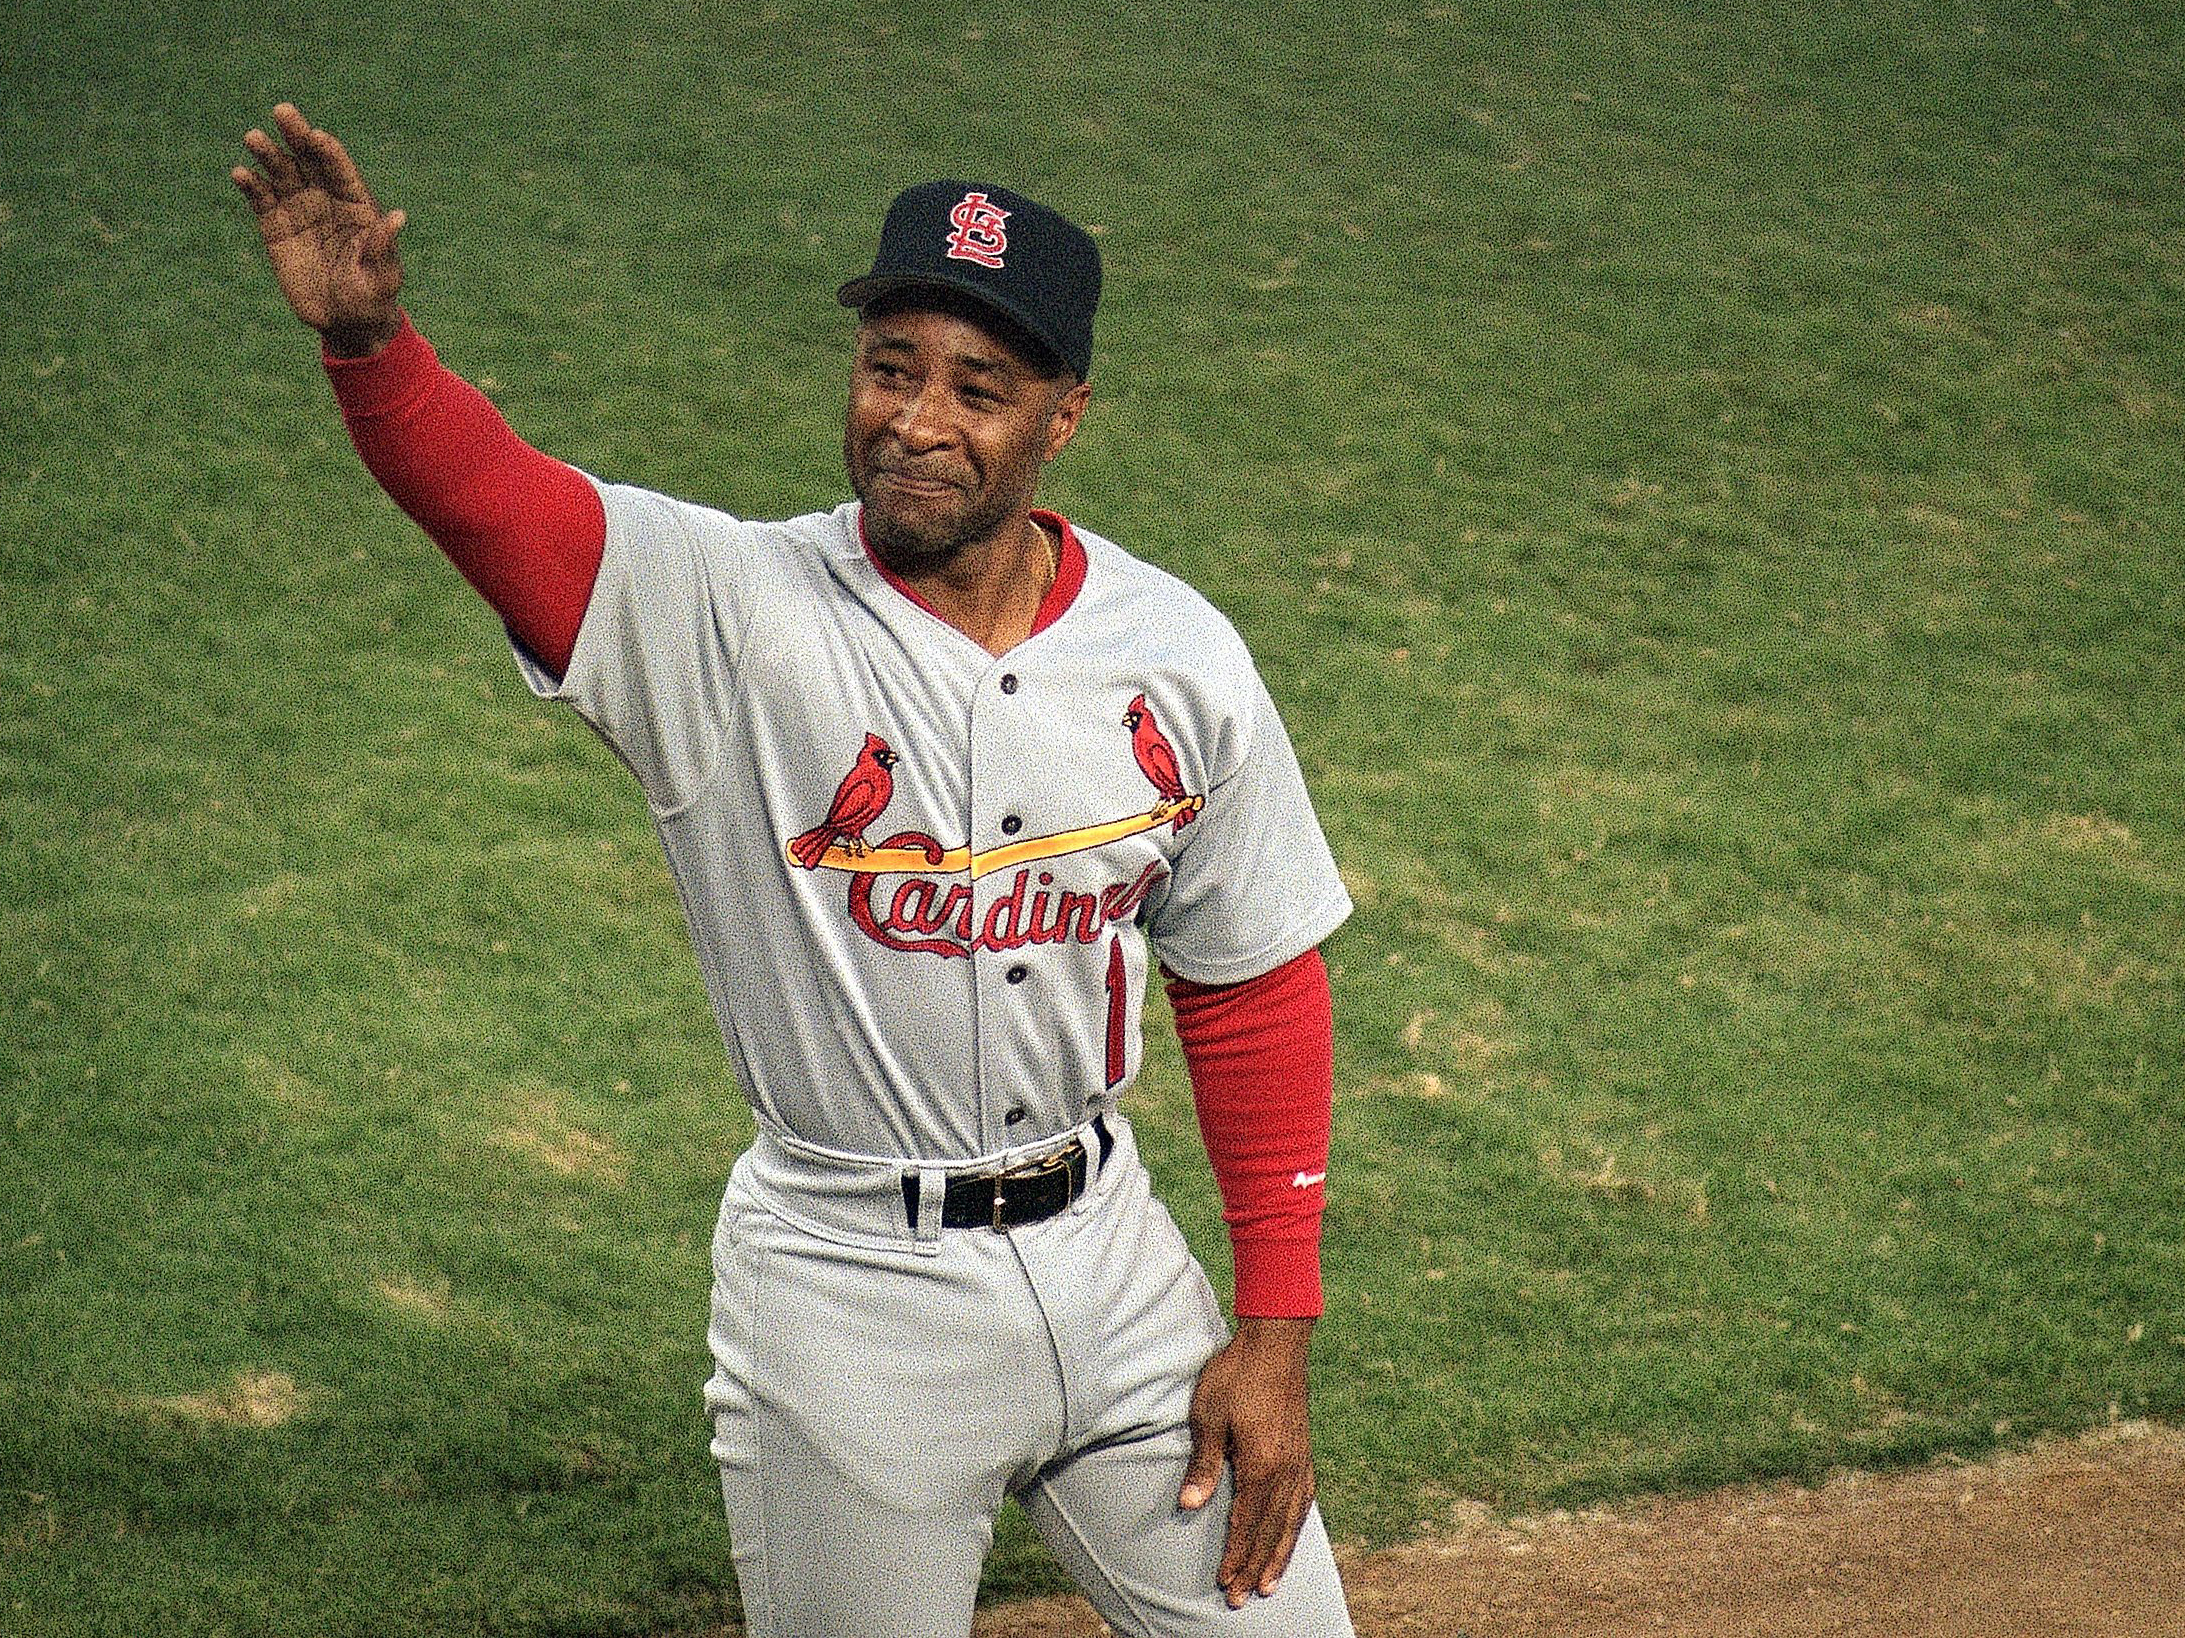 Not My Job: We Quiz Baseball Great Ozzie Smith On 'The Wizard Of Oz'